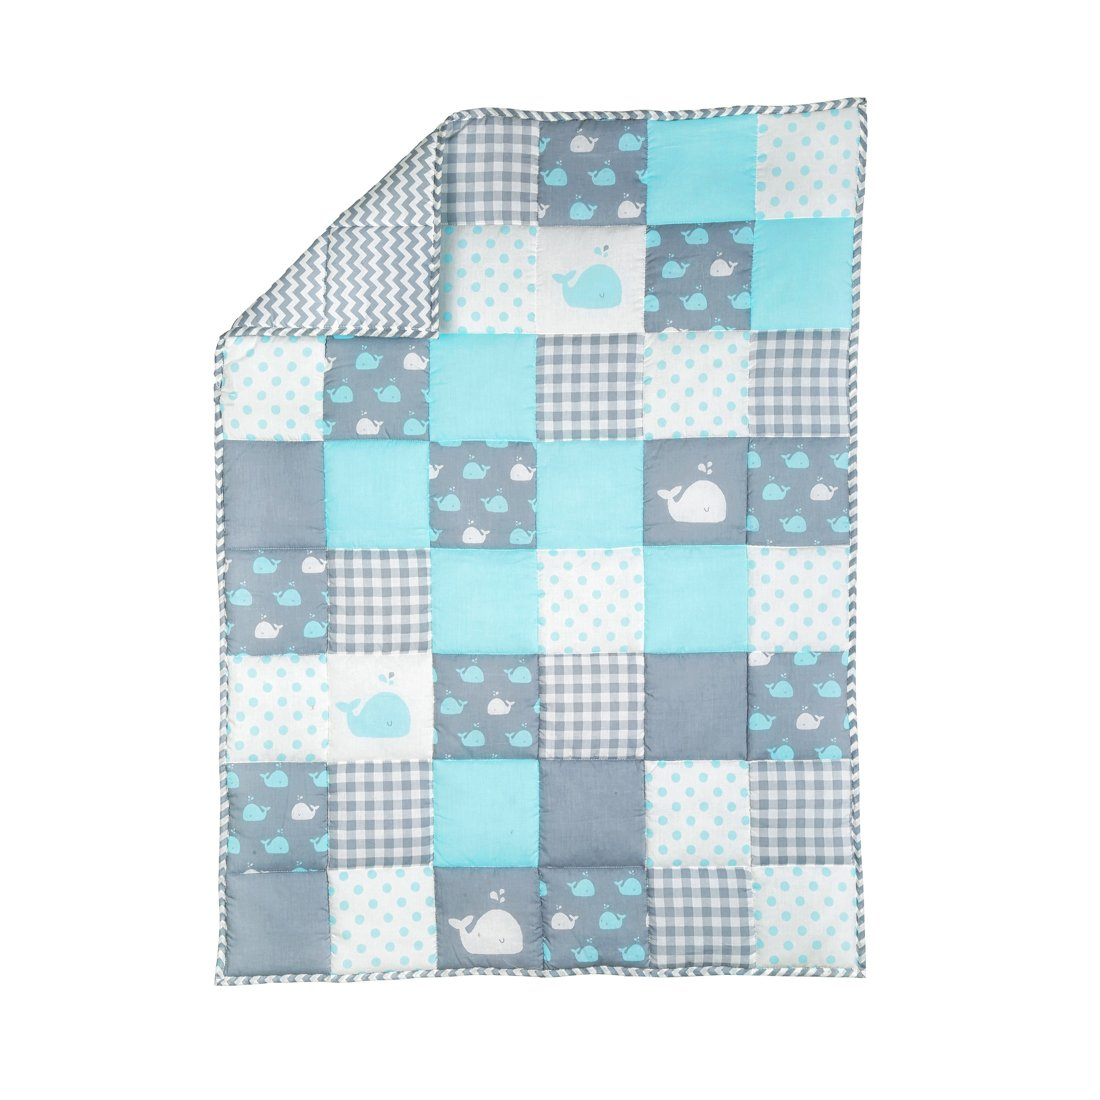 Plush Blue Toddler Blanket - Soft Cot Comforter for Boys and Girls Pure Cotton Baby Cradle Quilt